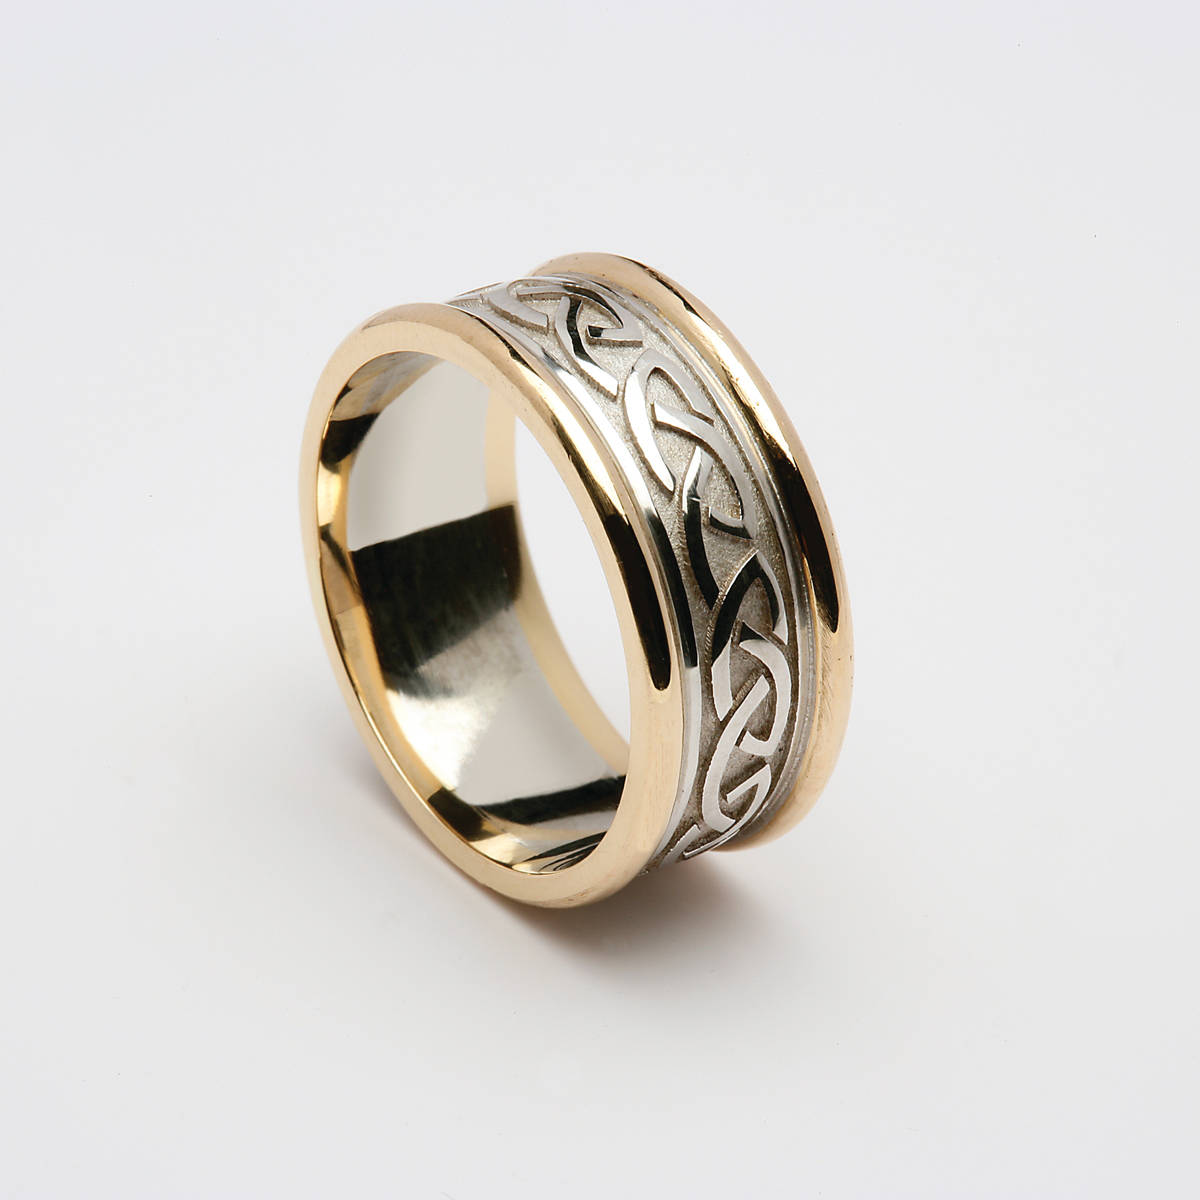 10 carat white gold man's Celtic love knot wedding ring with yellow gold rims.7mmVery beautiful.